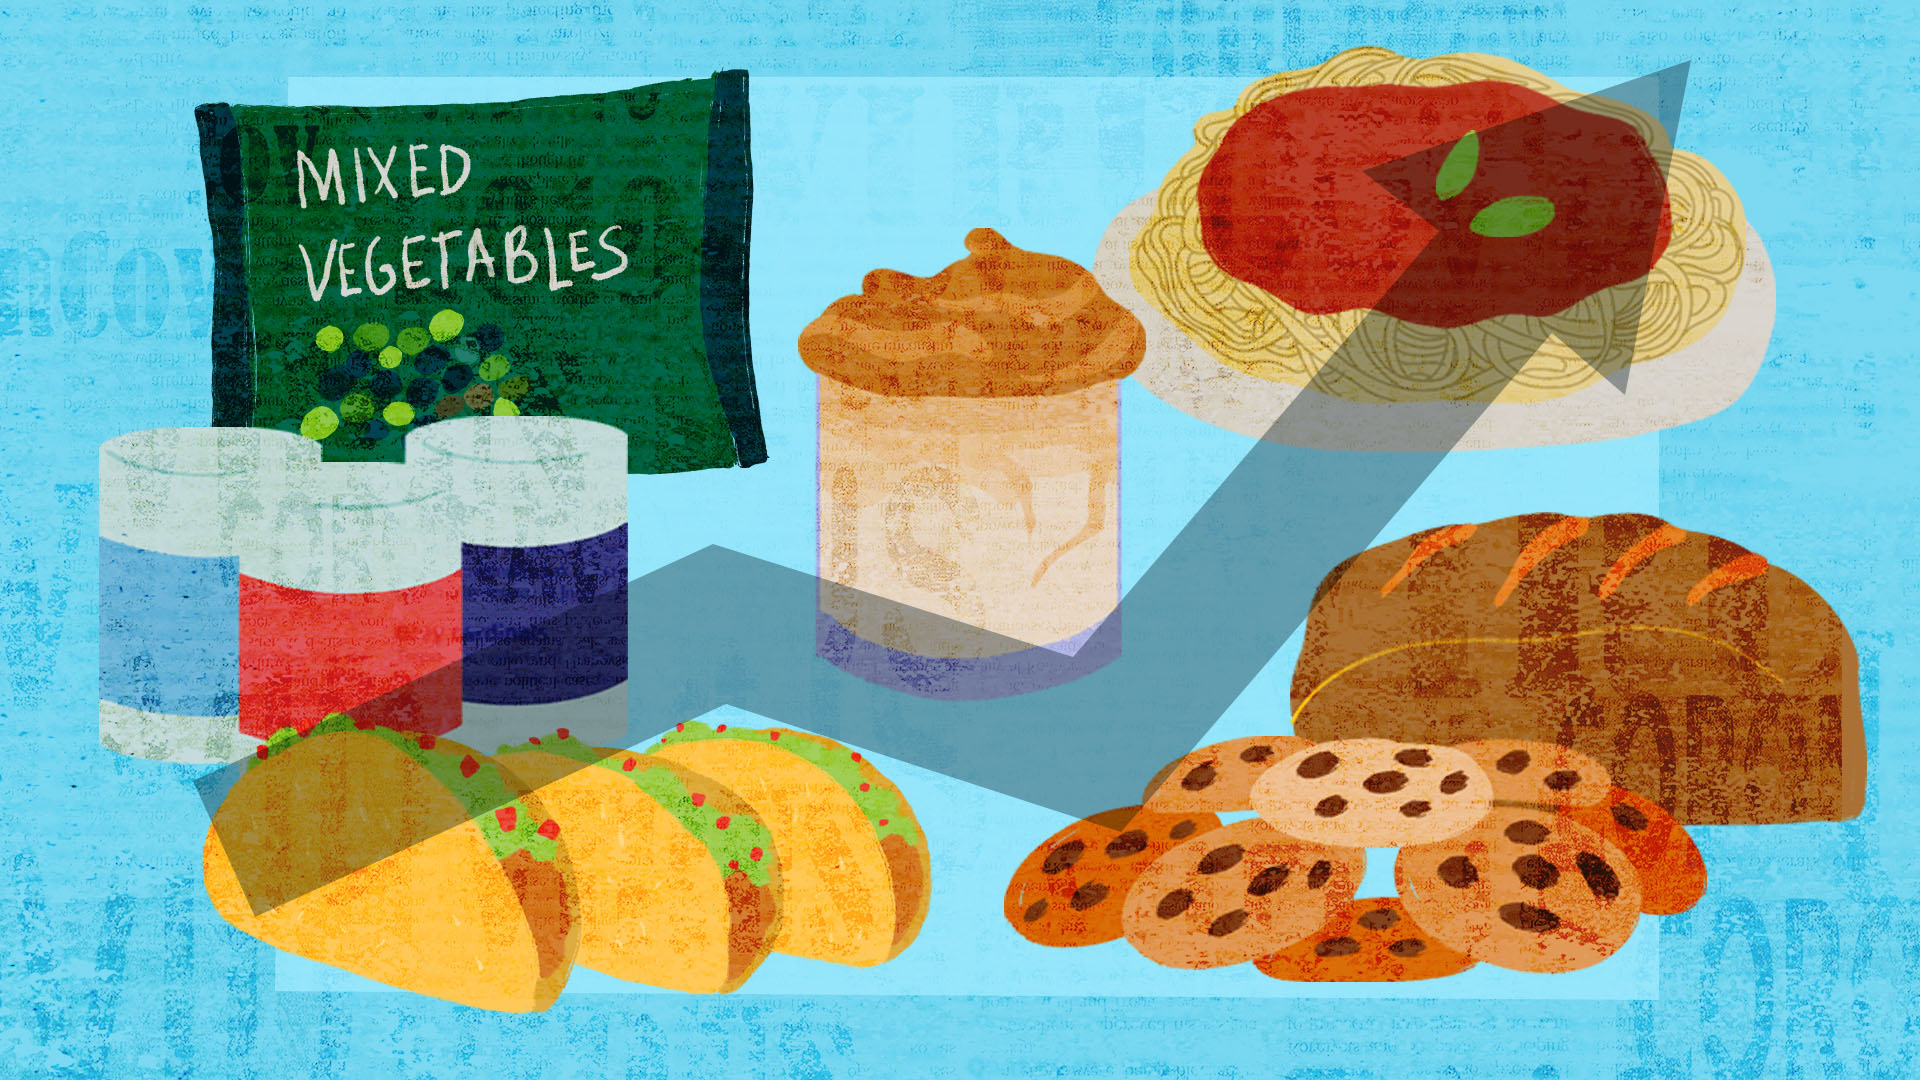 illustration of different foods on a blue background